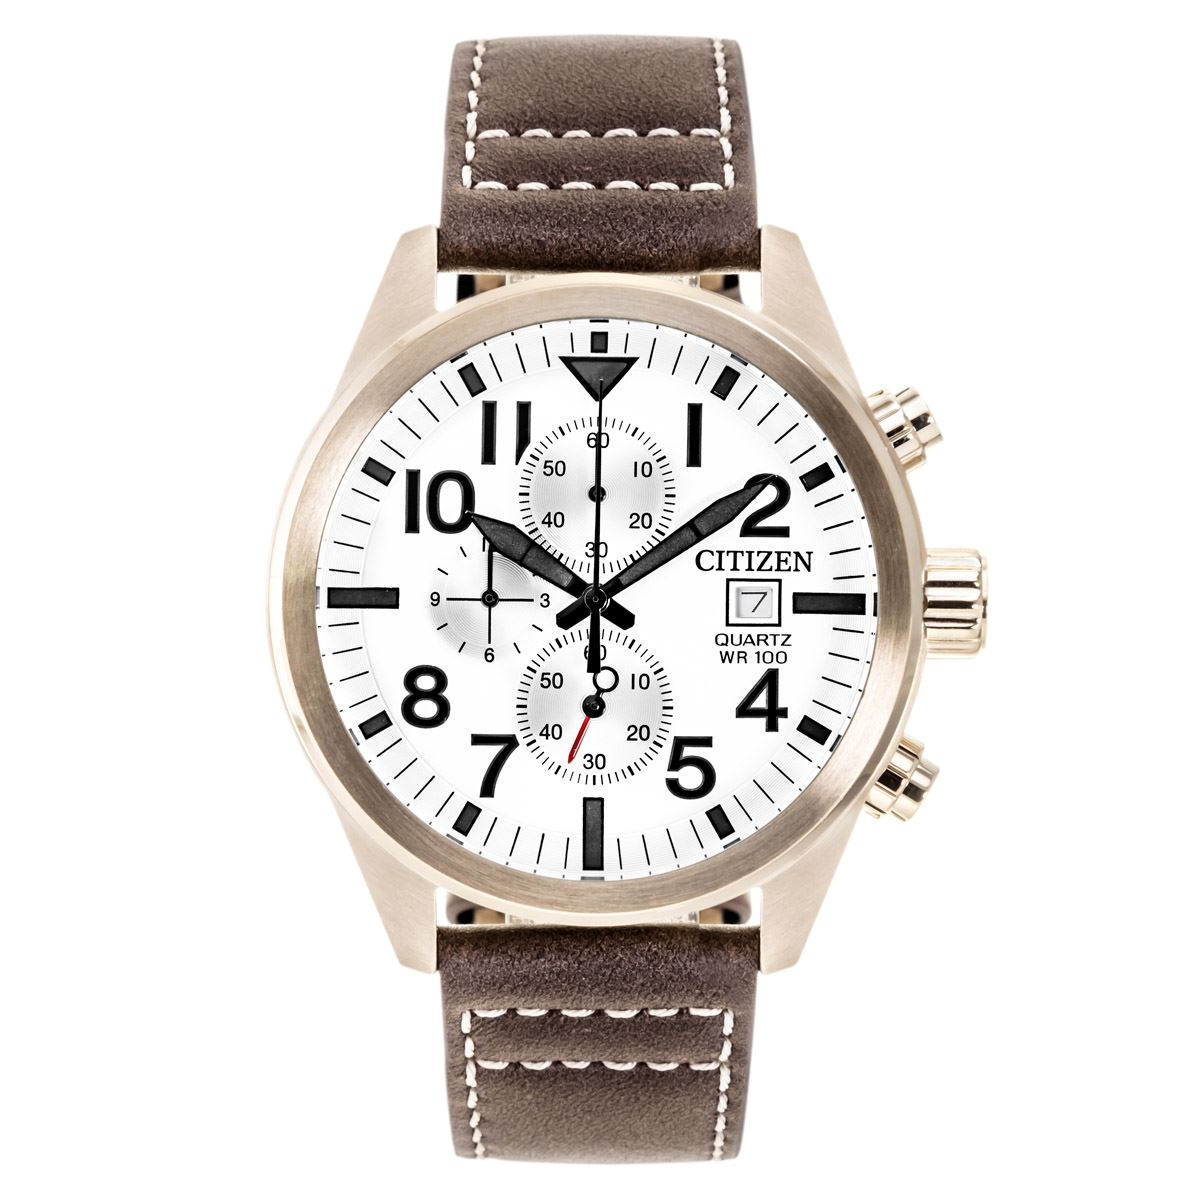 Reloj citizen 60998 caballero  - Sanborns